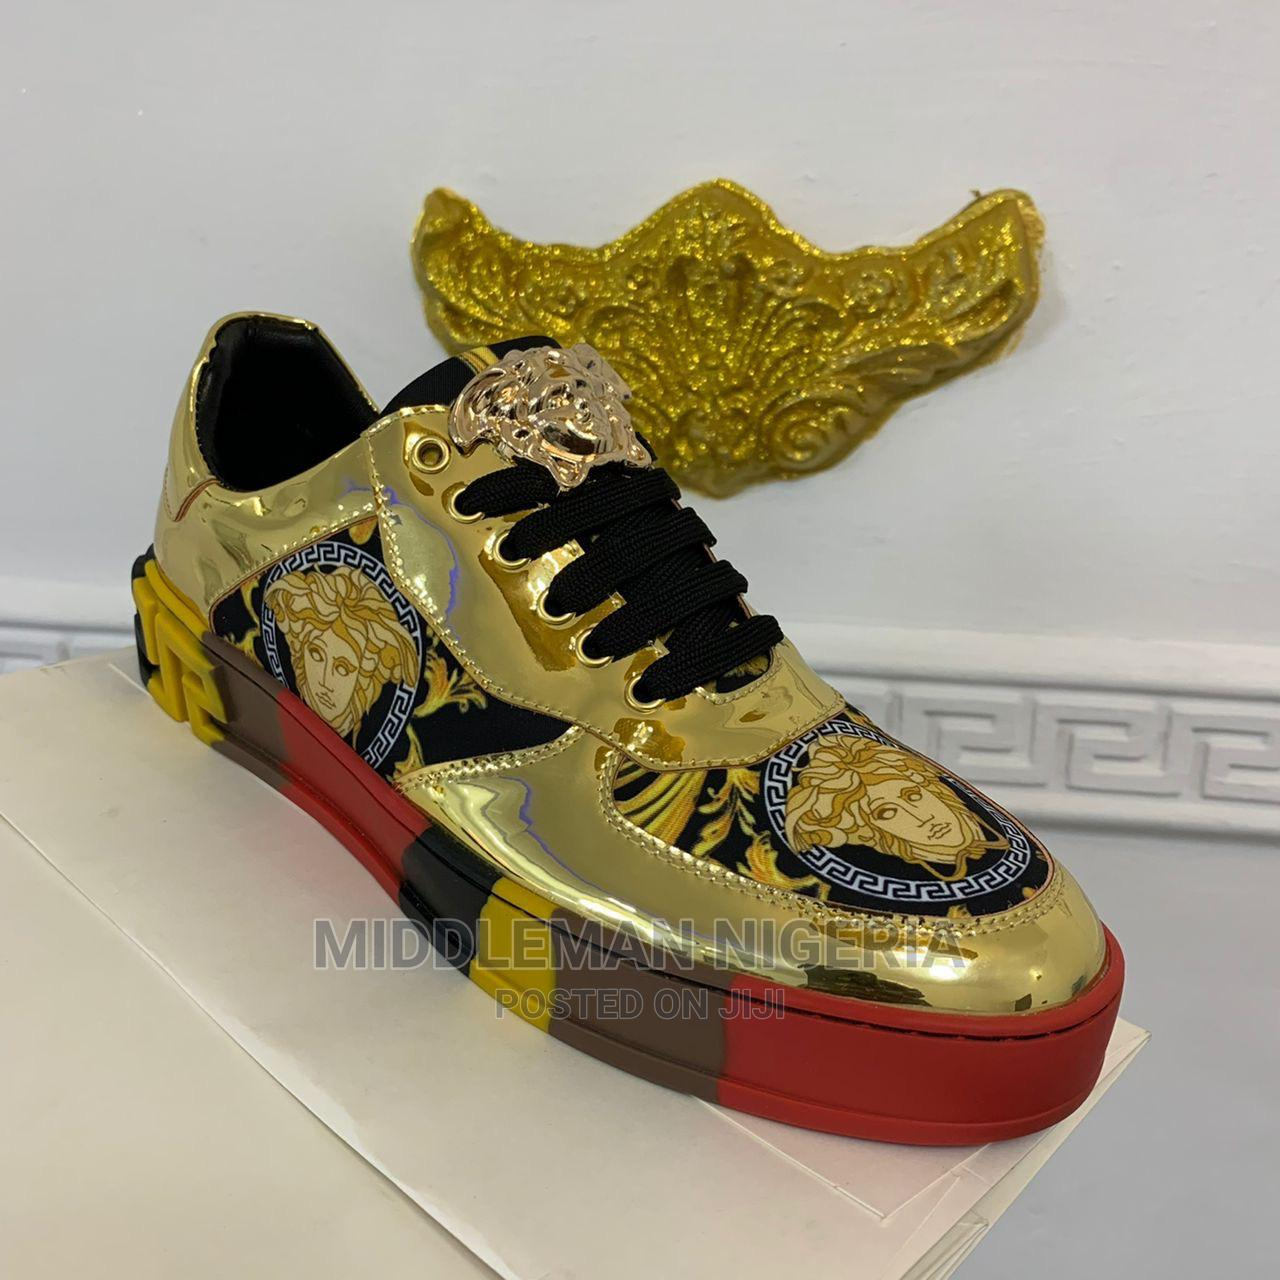 Gold GIANNI VERSACE Sneakers | Shoes for sale in Apapa, Lagos State, Nigeria